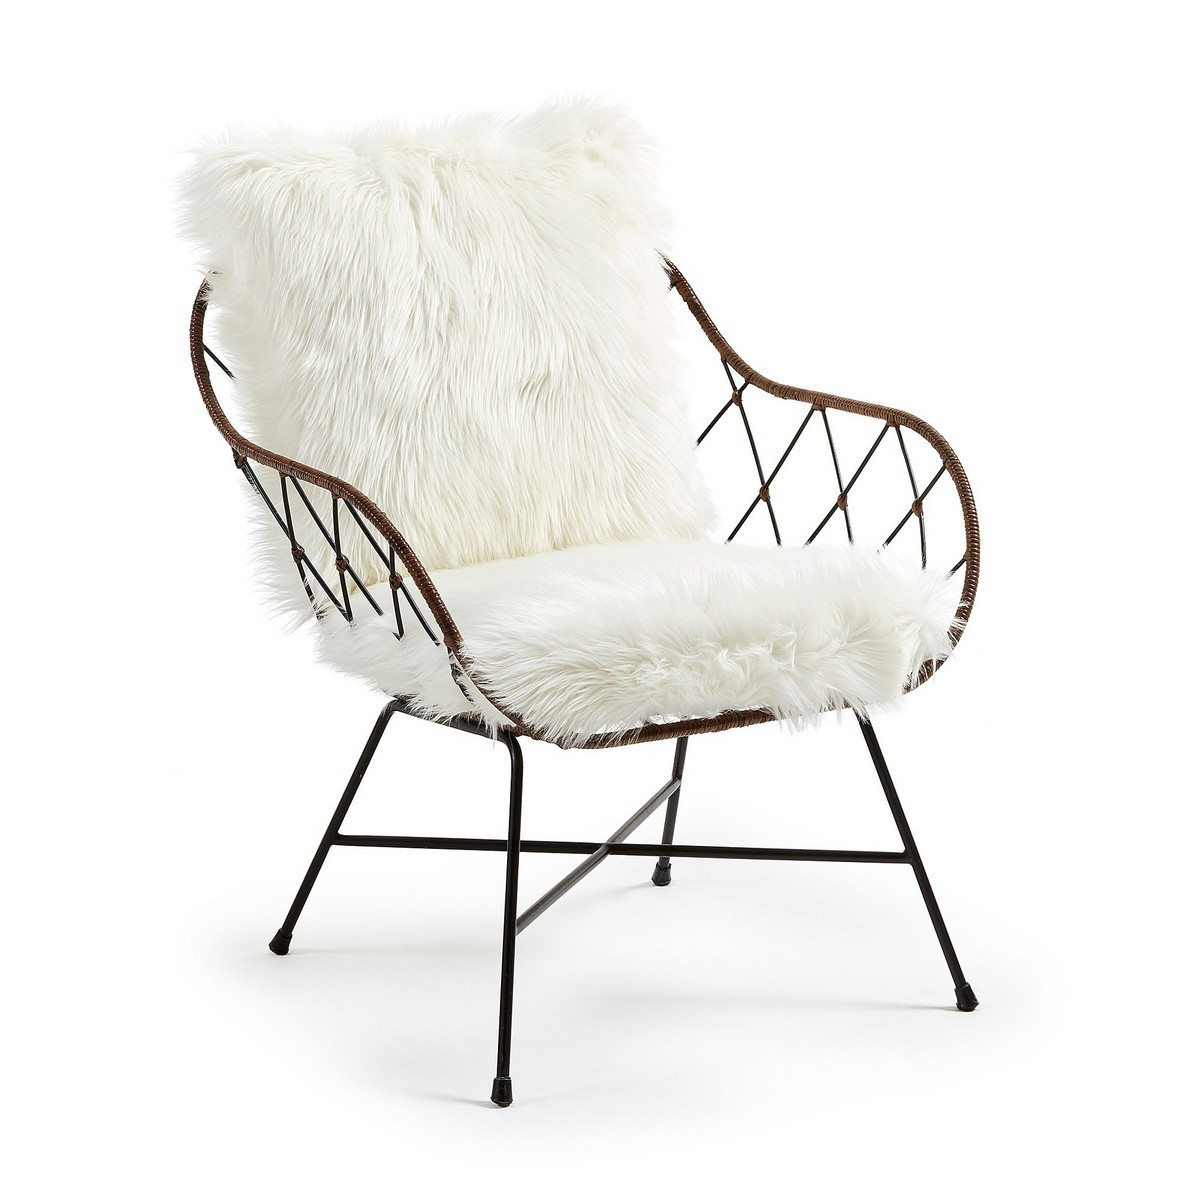 Loxton Steel Lounge Armchair with Faux Fur Cushions